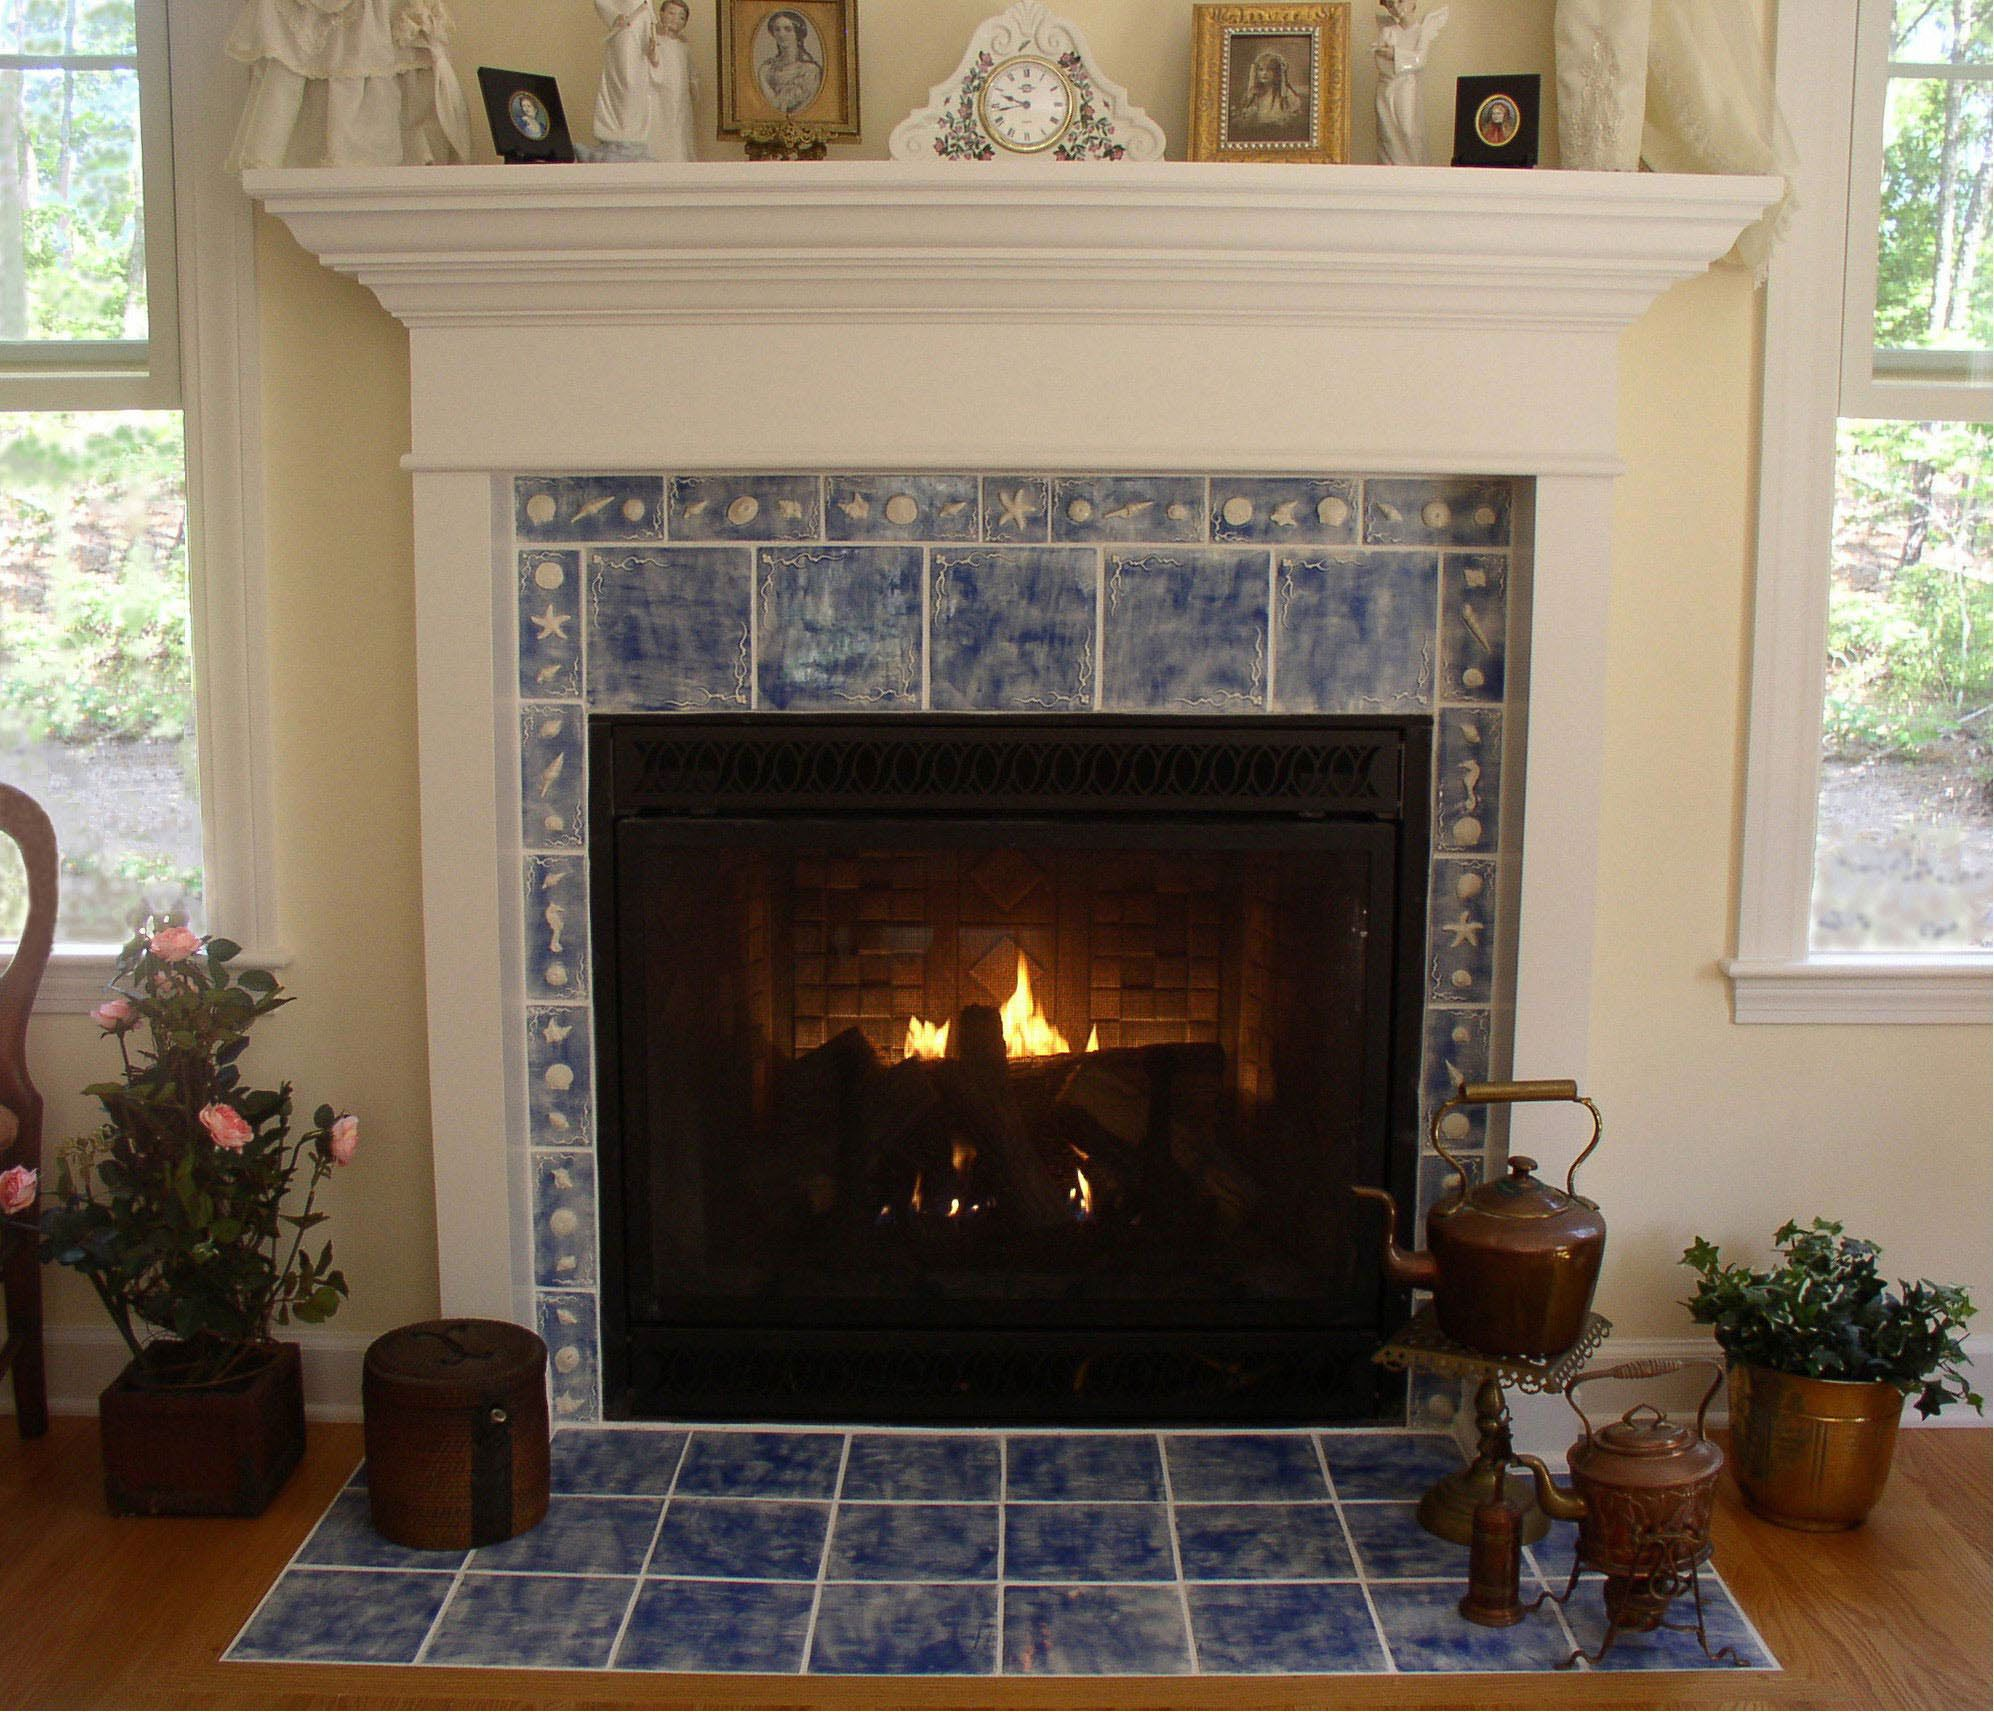 Tile Fireplace Mantels google image result for http://www.strachanporcelain/images